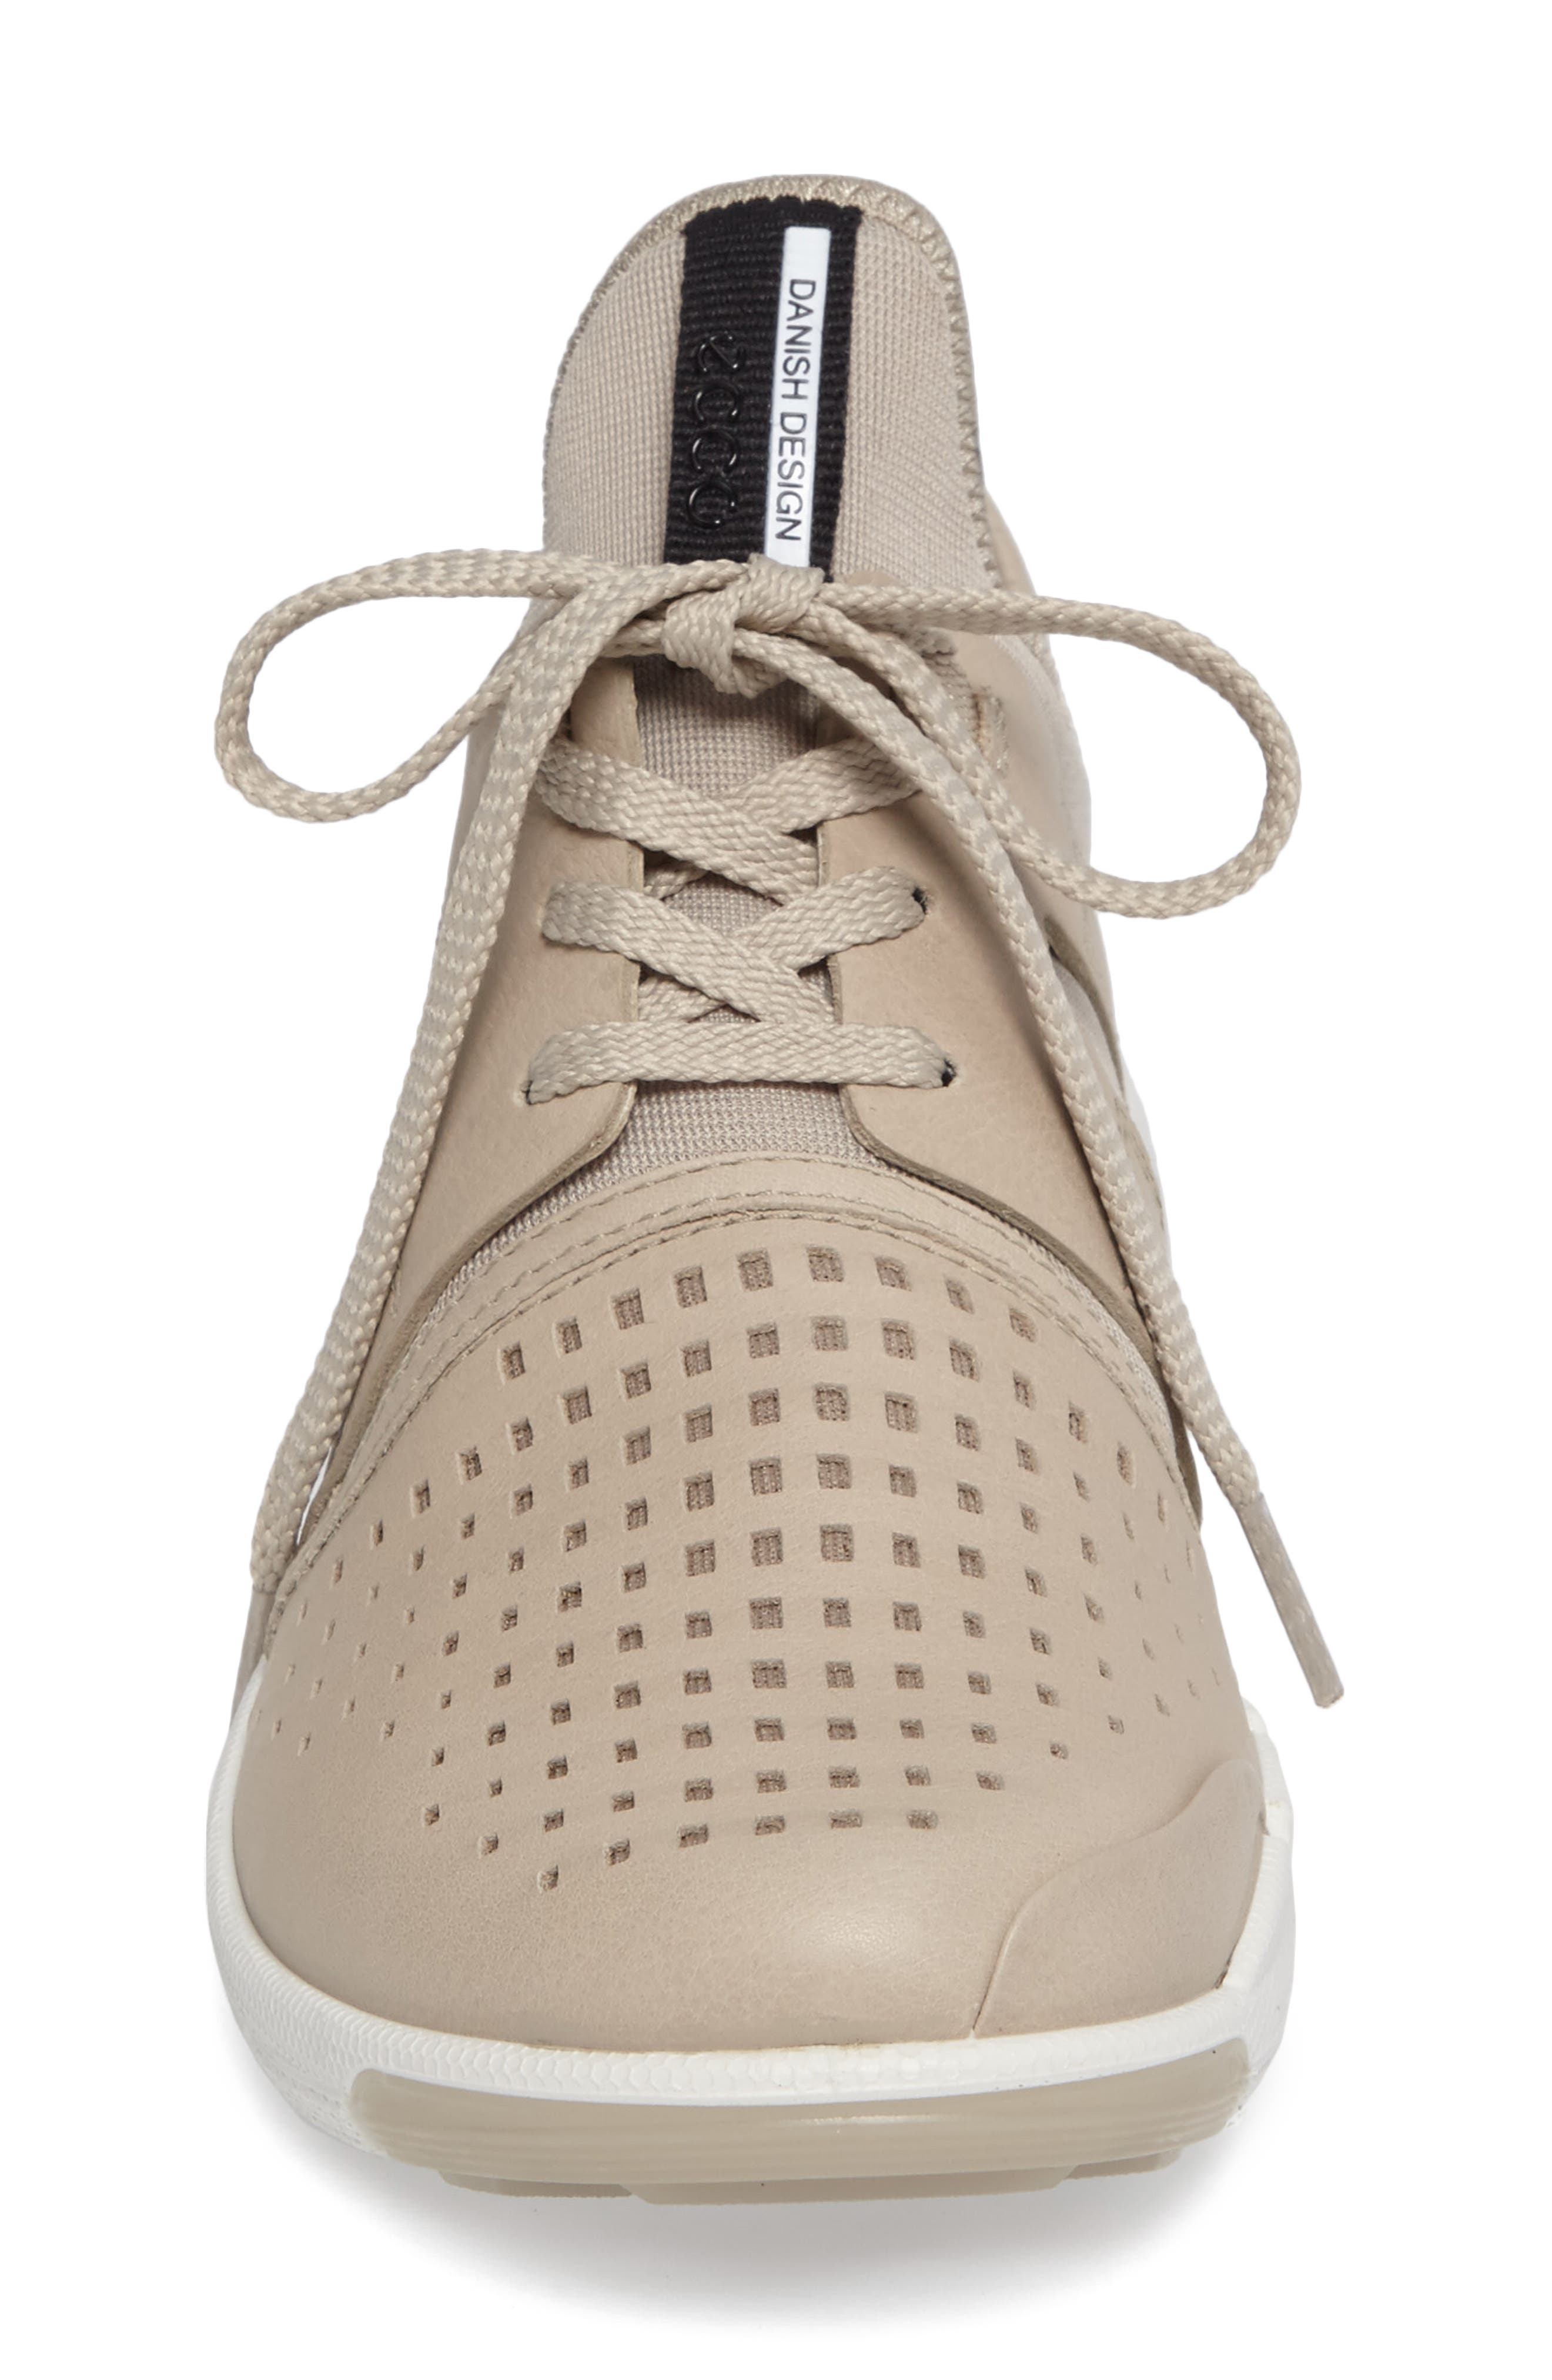 Intrinsic 2 Sneaker,                             Alternate thumbnail 5, color,                             Oyster Leather